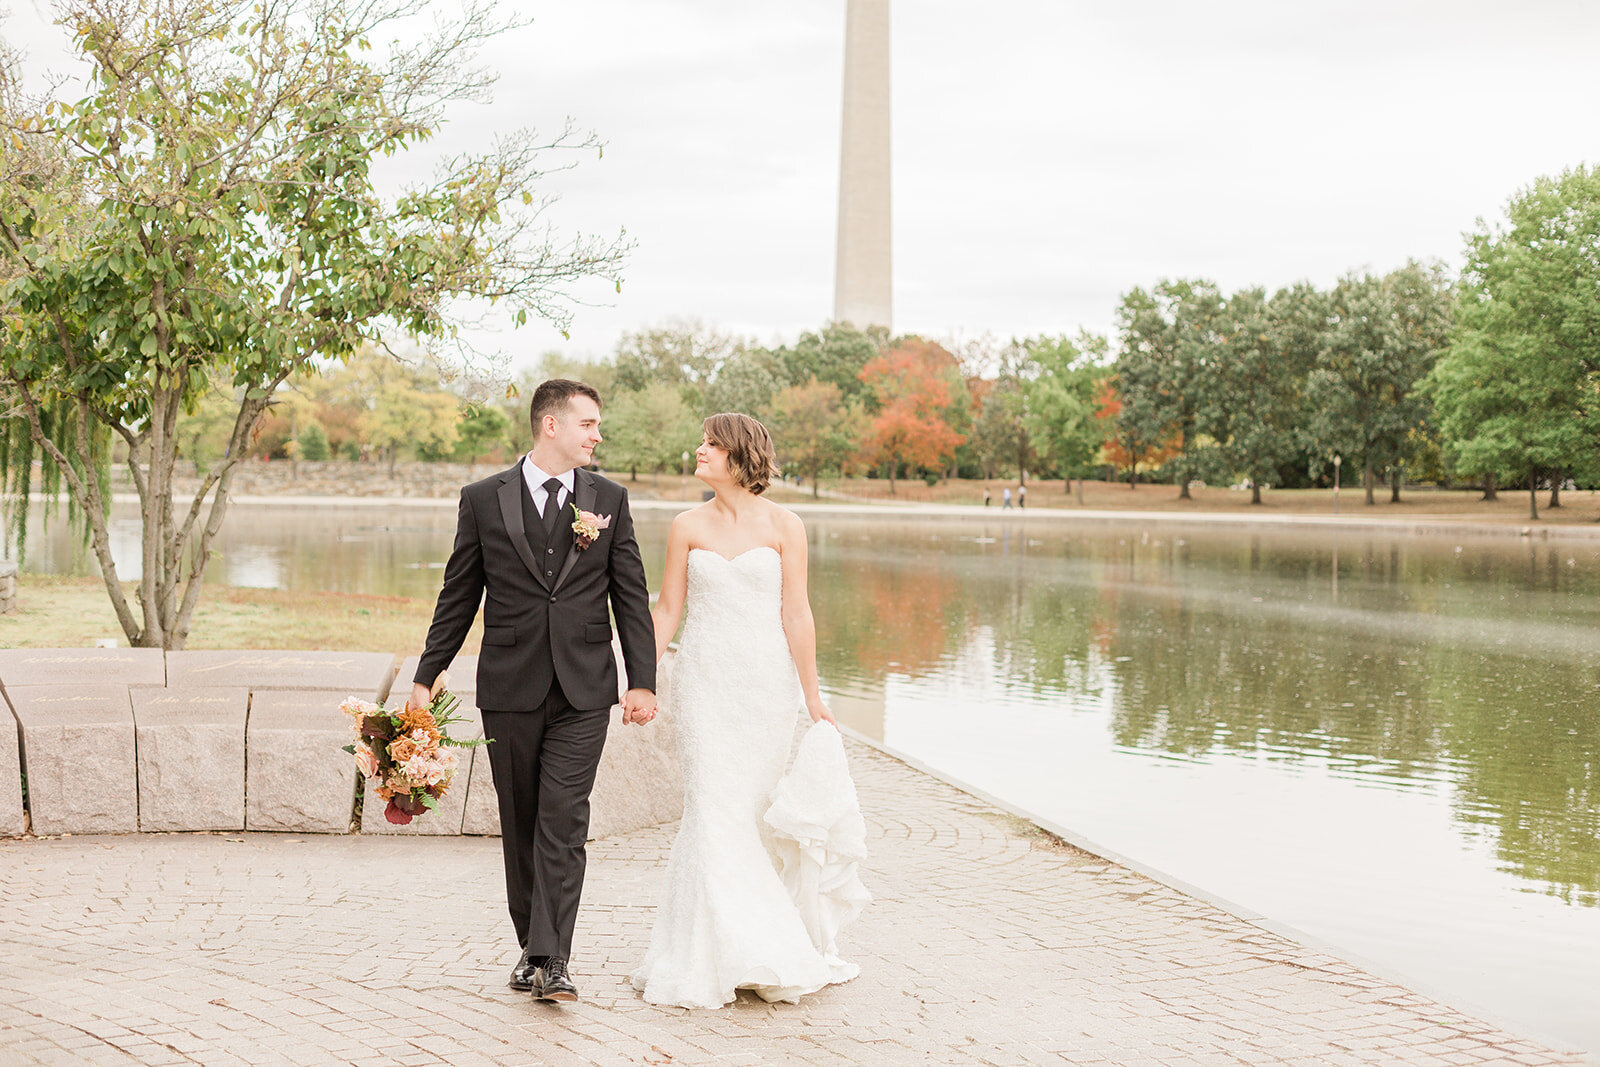 Shanna+Connor_DC_Oct2019_KelseyMariePhotography_SS-9083_websize